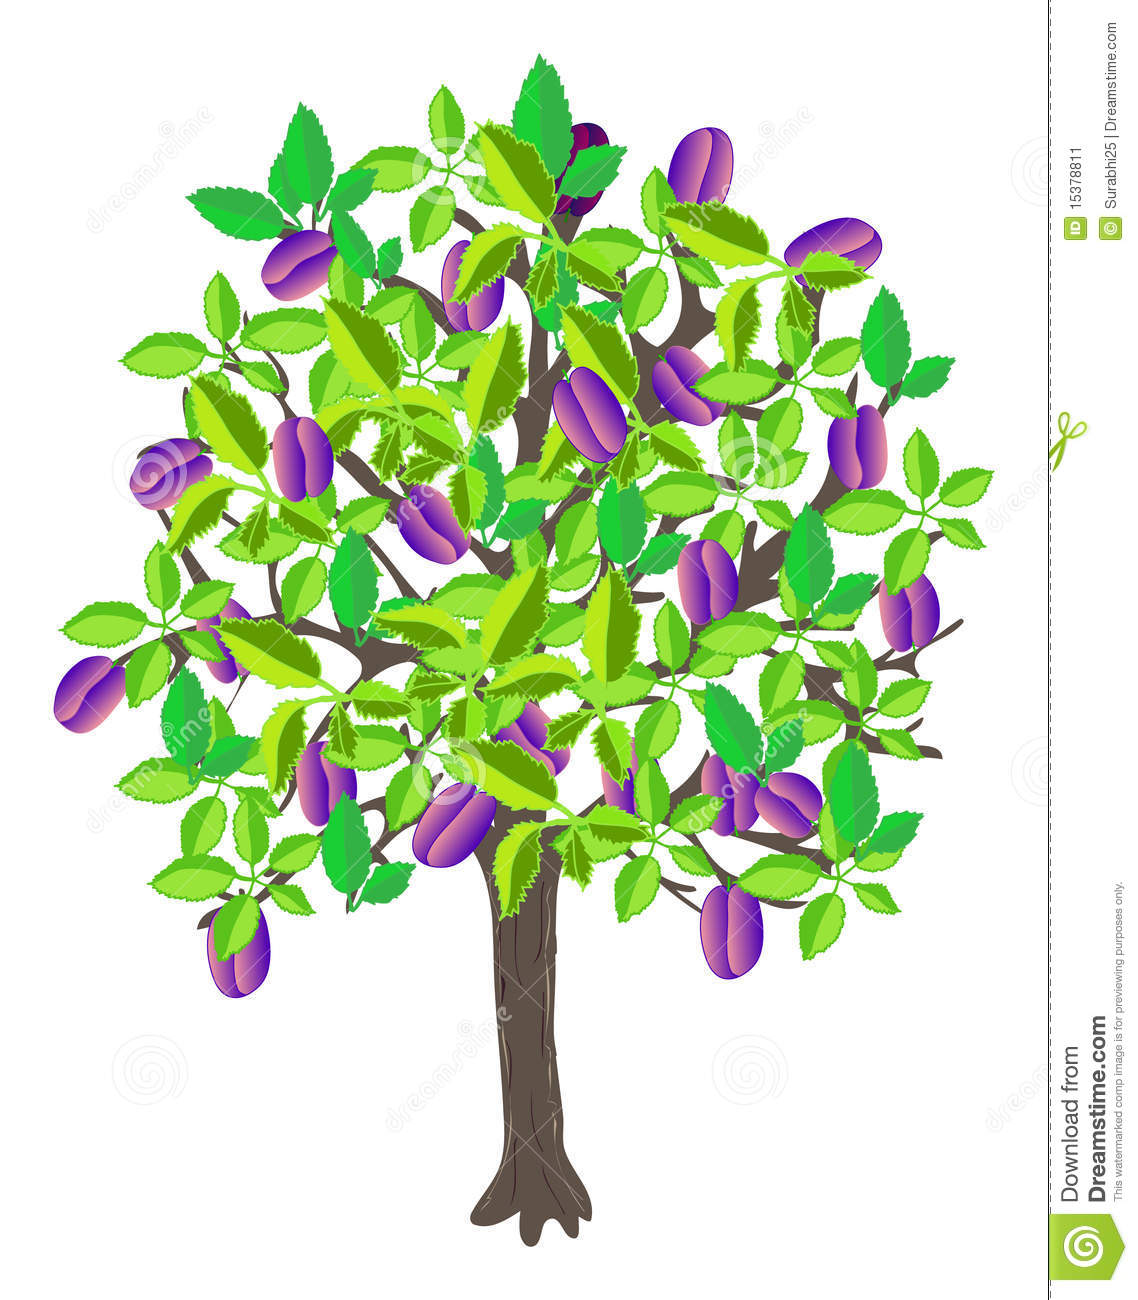 14 Best Images About Plum And Gray Decor On Pinterest: Plum Tree Stock Vector. Image Of Ripe, Vegetable, Leaf